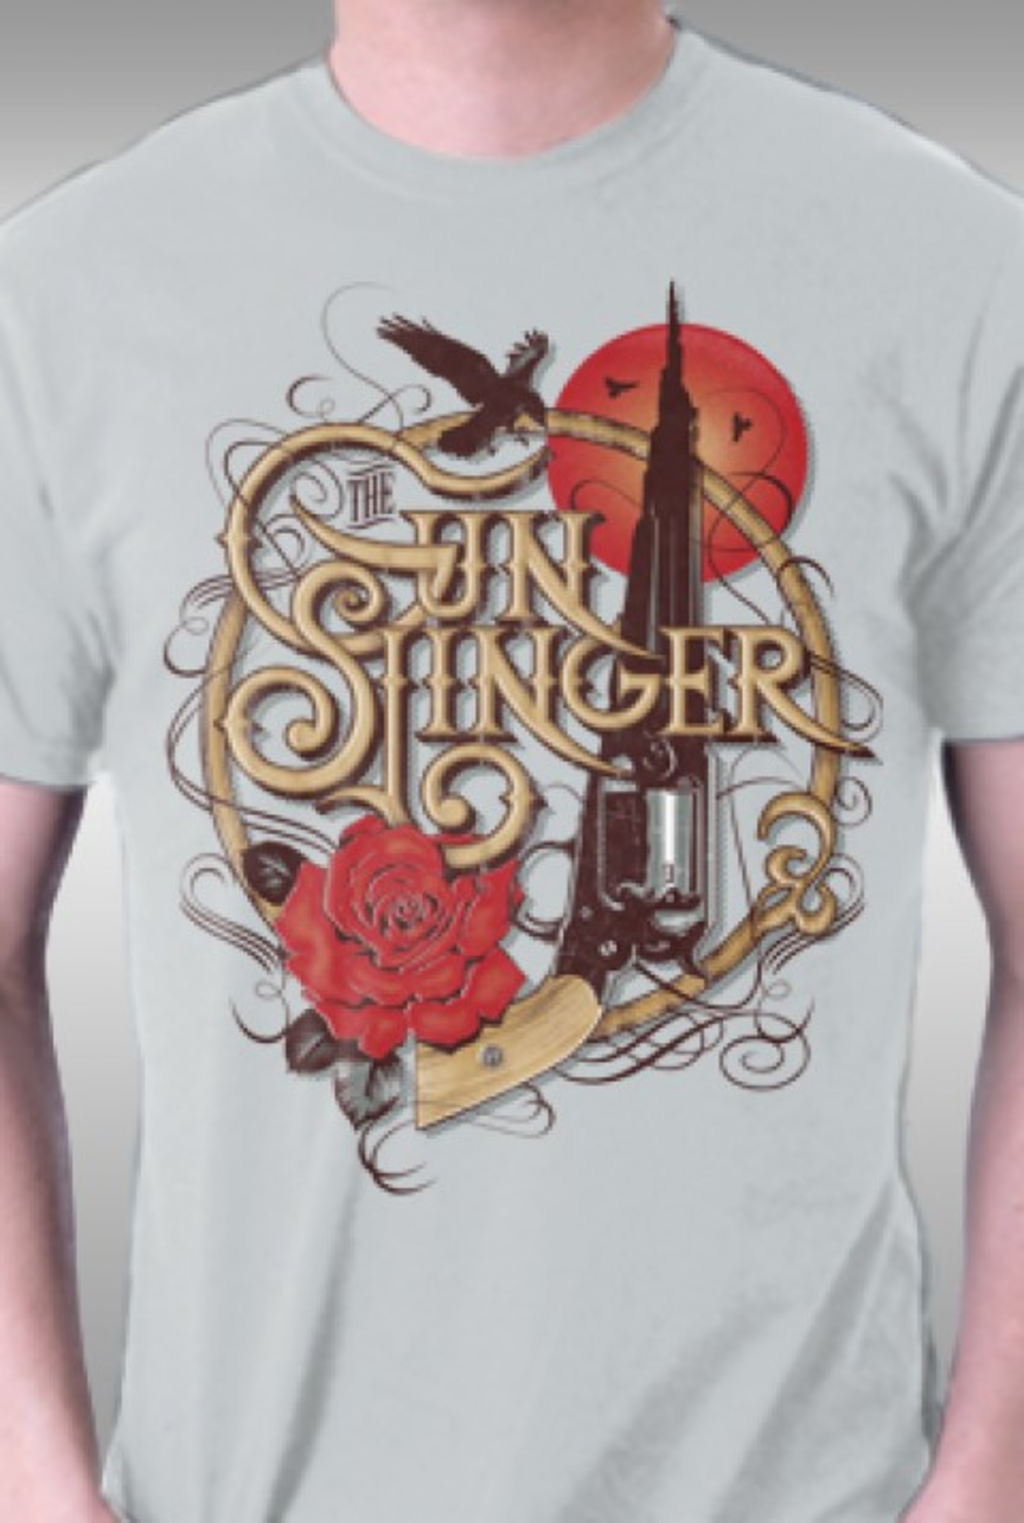 TeeFury: The Gunslinger